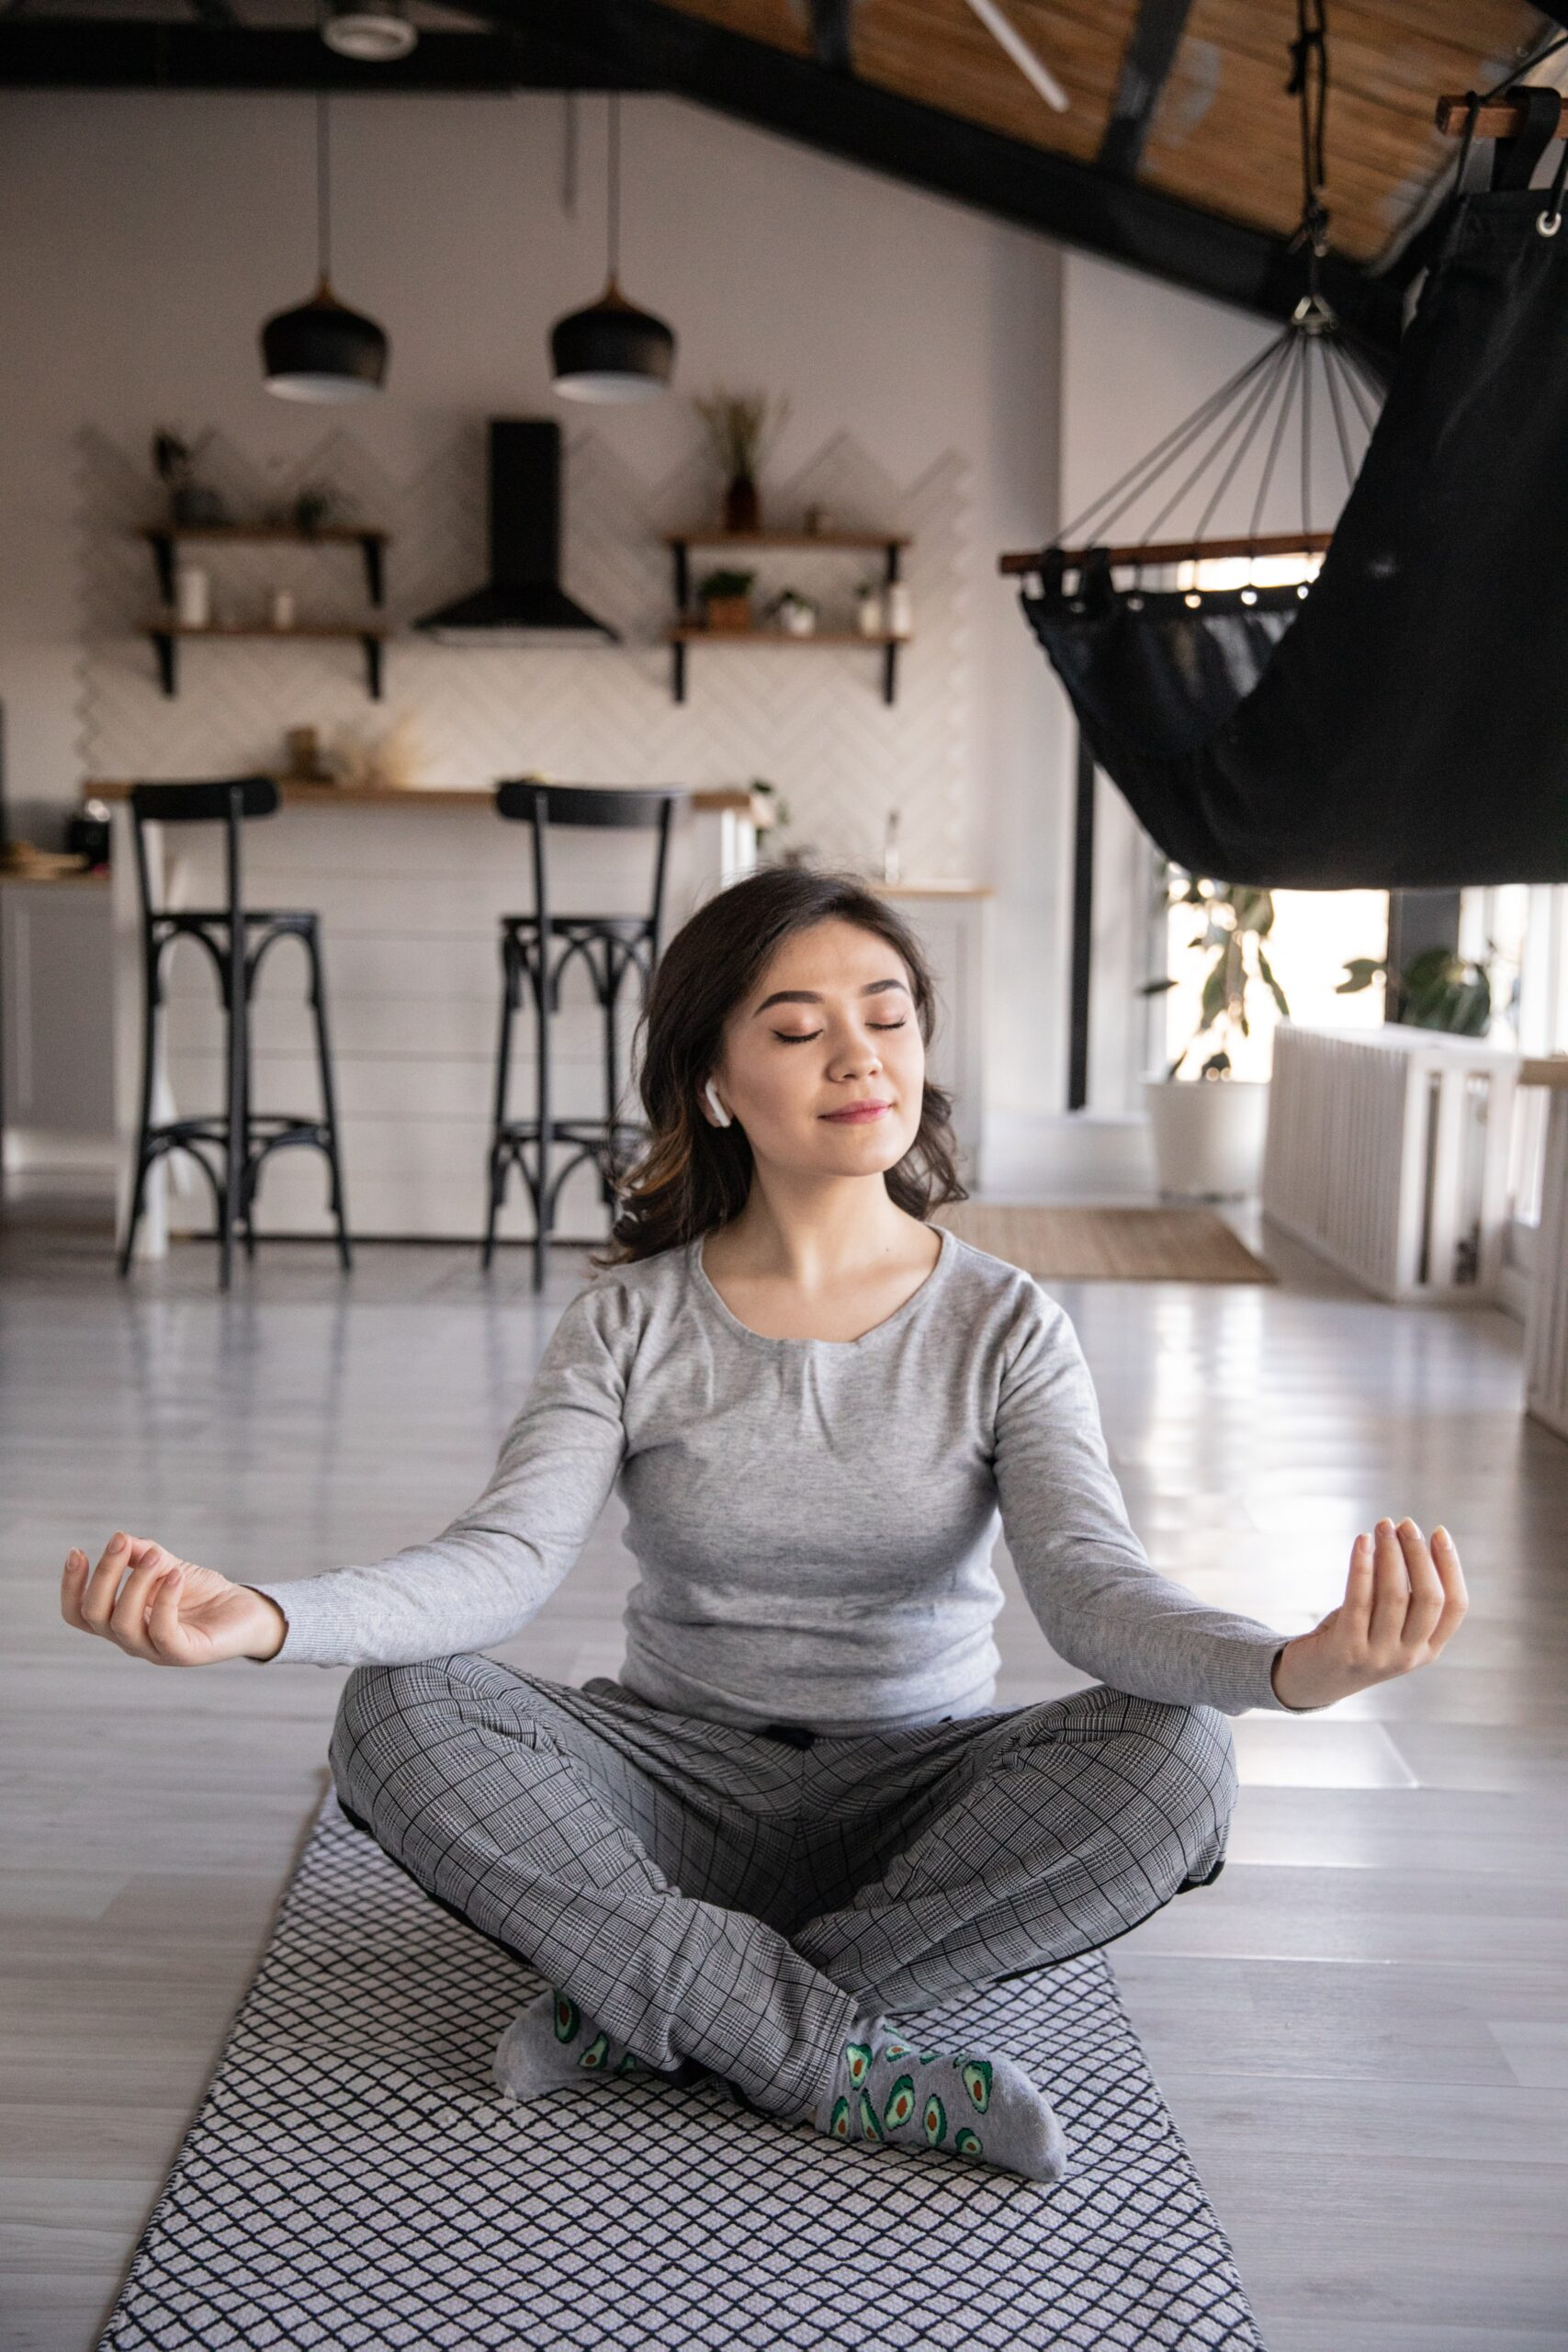 4 Simple Ways You Can Up Your Yoga Game During COVID-19